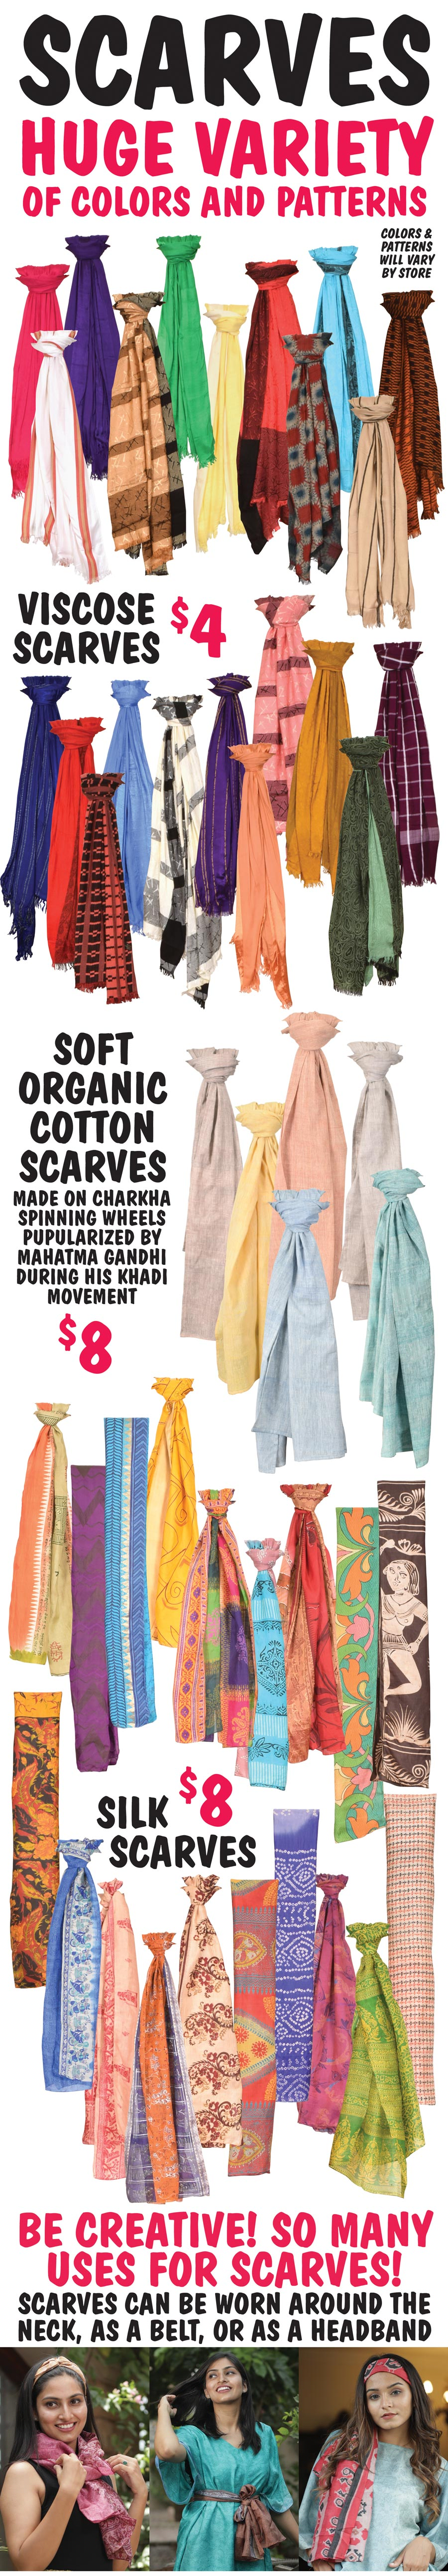 Scarves - Viscose Scarves $4, Organic Cotton or Silk Sari Scarves $8. Huge Variety of Patterns and Colors.